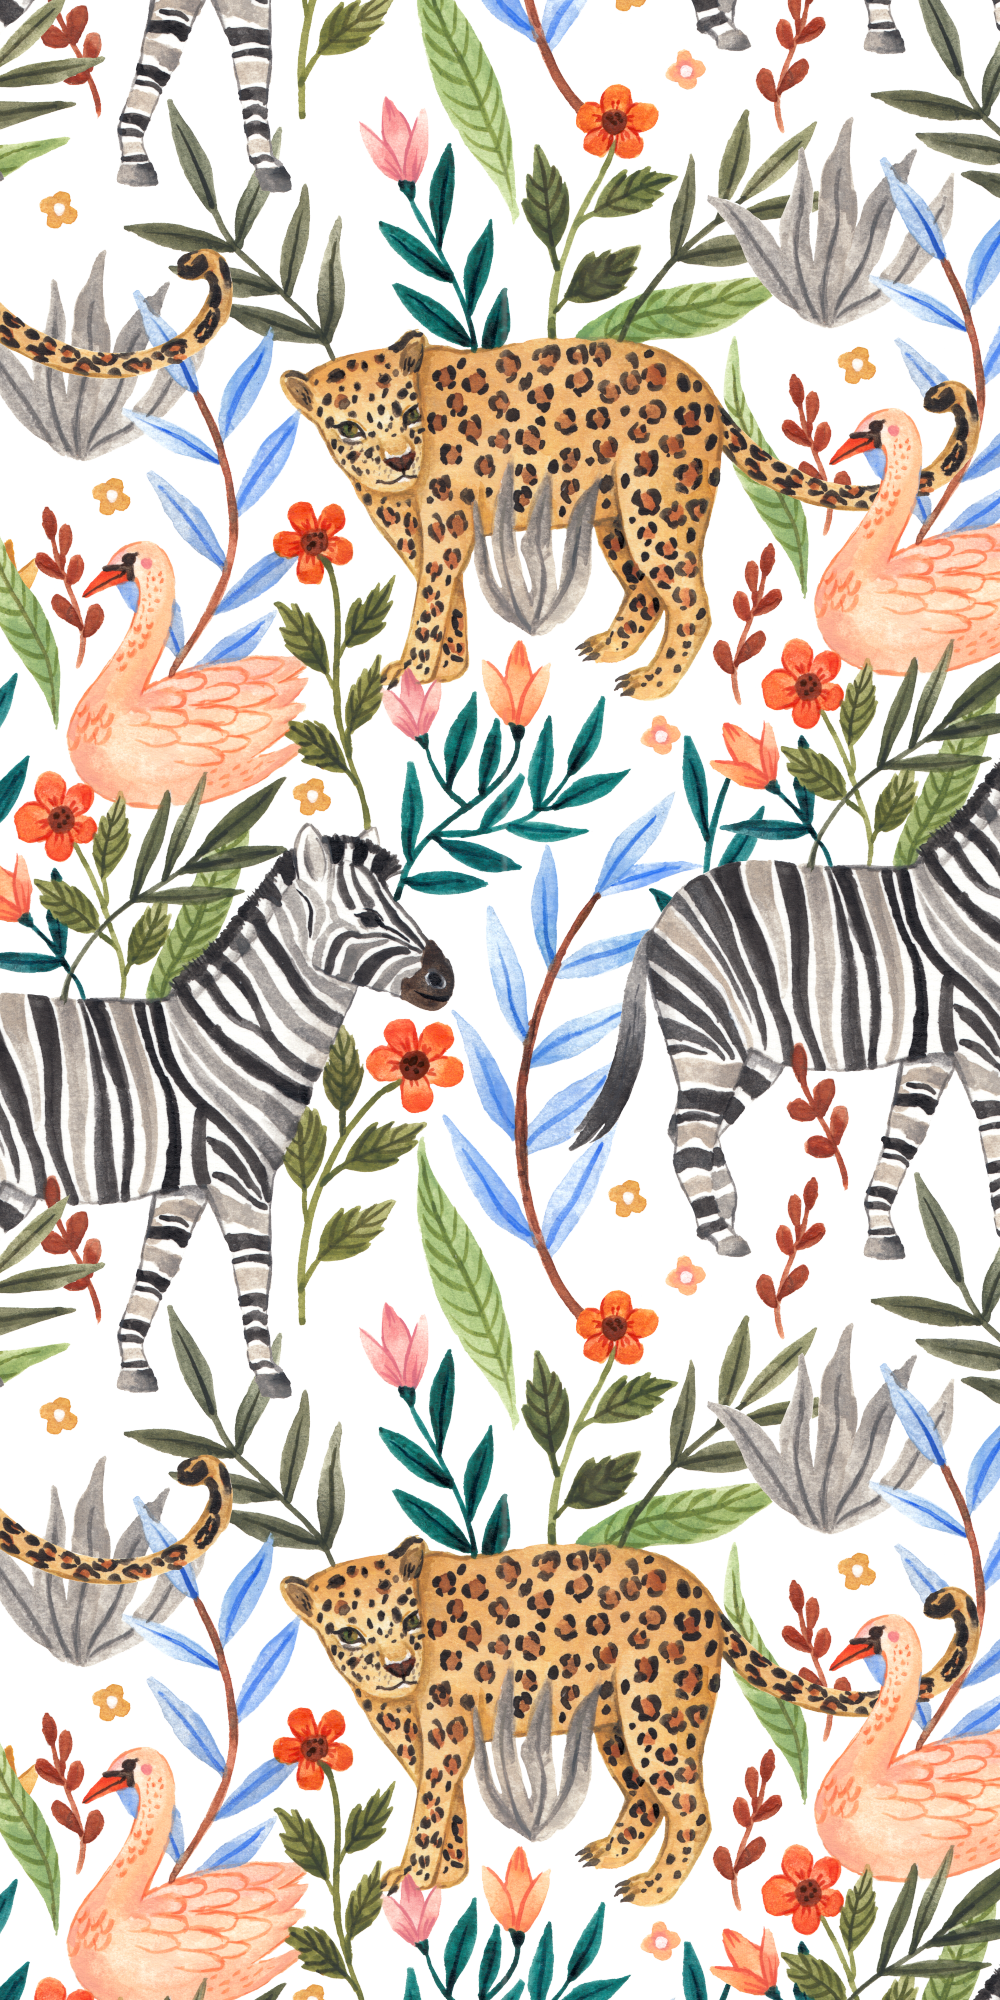 The Mighty Jungle Casetify Iphone Animals Zebra Tiger Bird Flowers Floral Art Iphone Background Wallpaper Animal Print Wallpaper Graphic Wallpaper